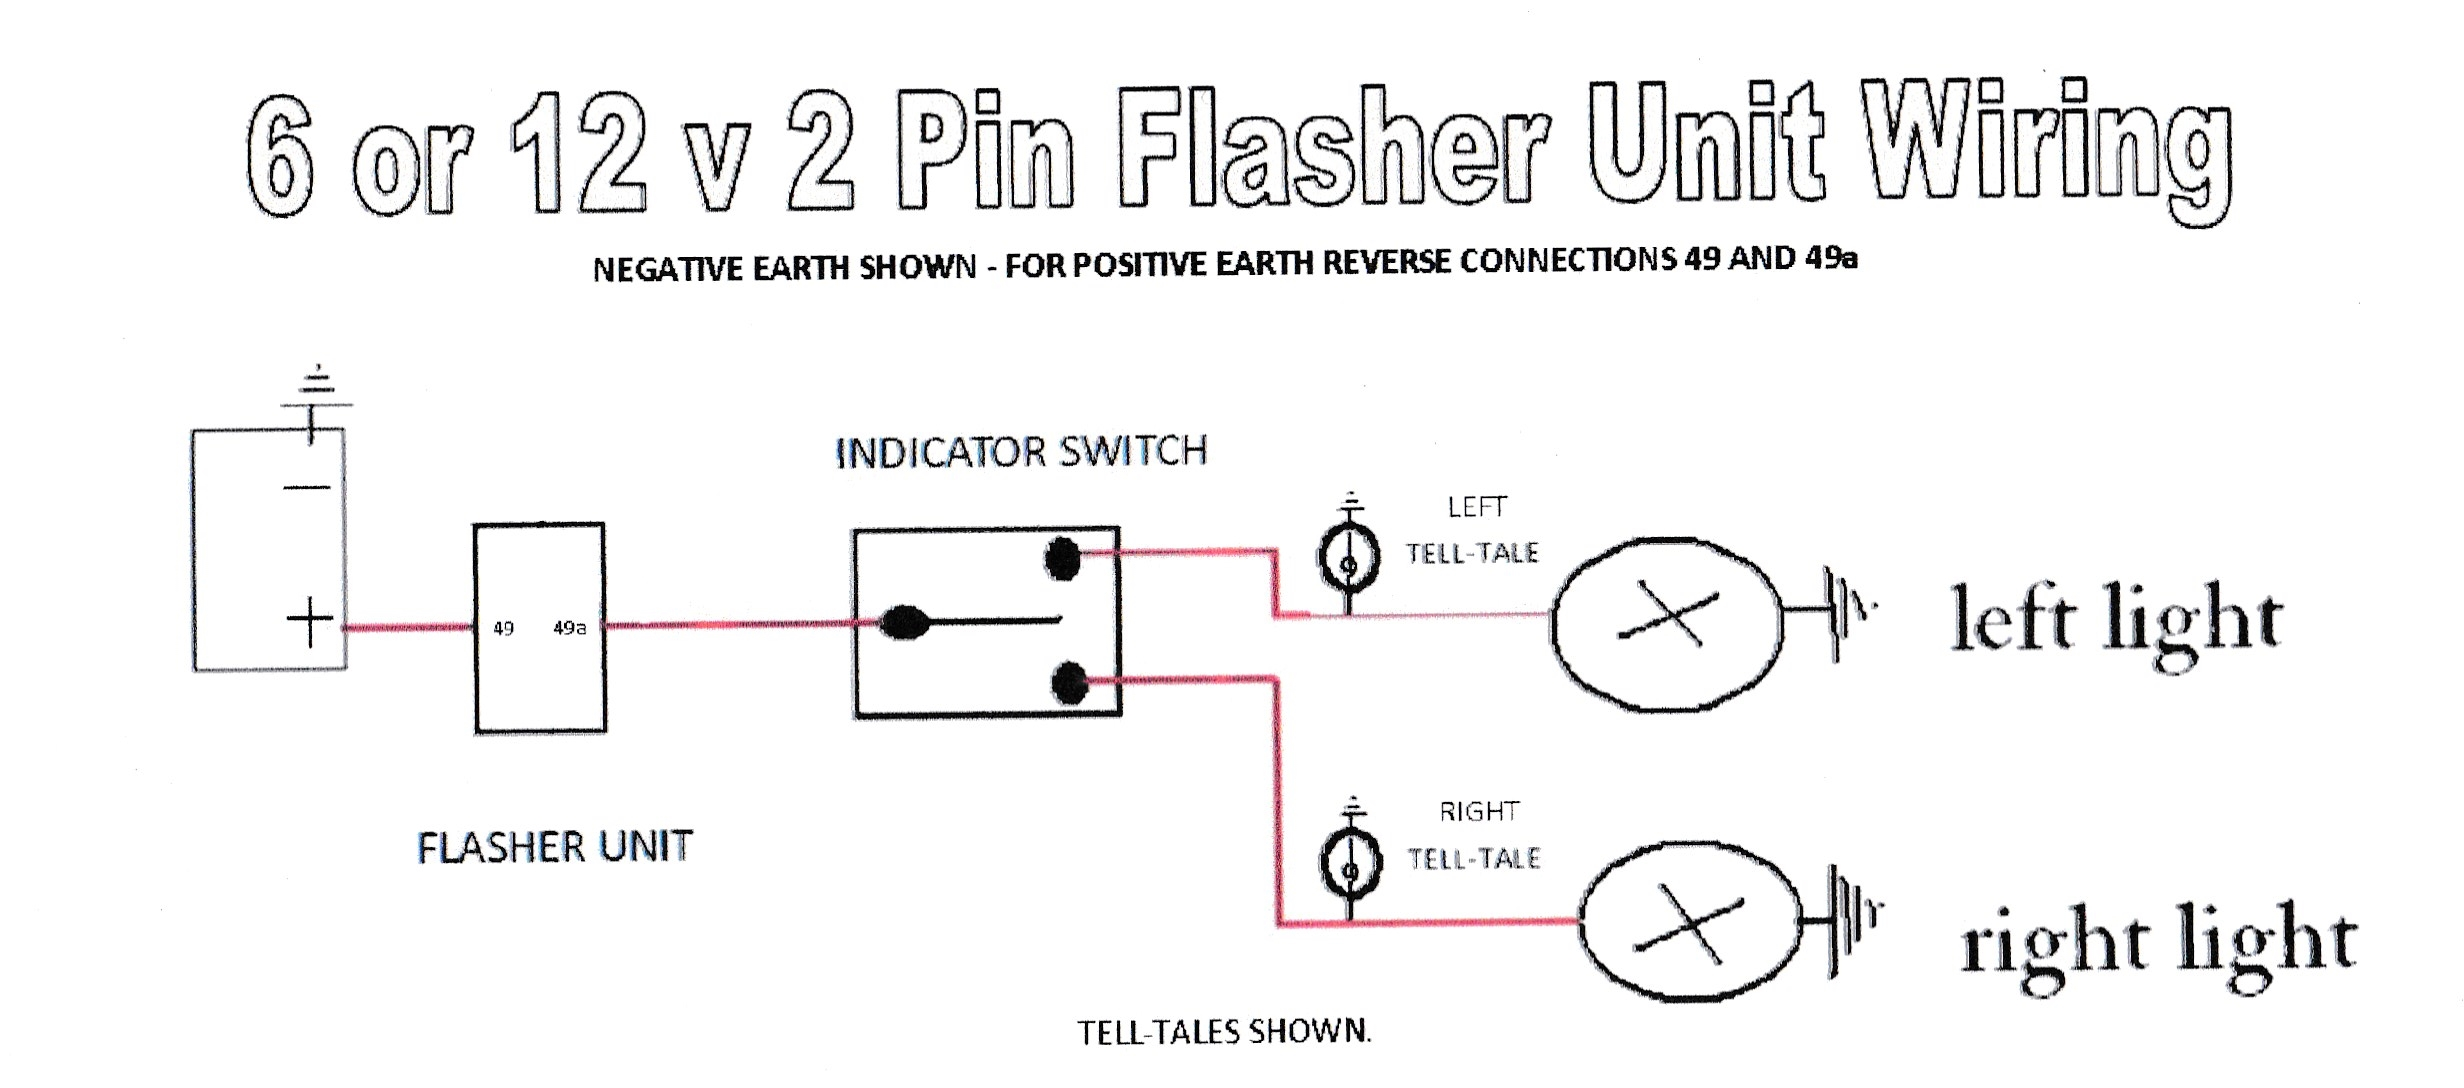 IMG_20150323_0001_NEW wiring diagrams to assist you with connecting up flasher unit wiring diagram at soozxer.org